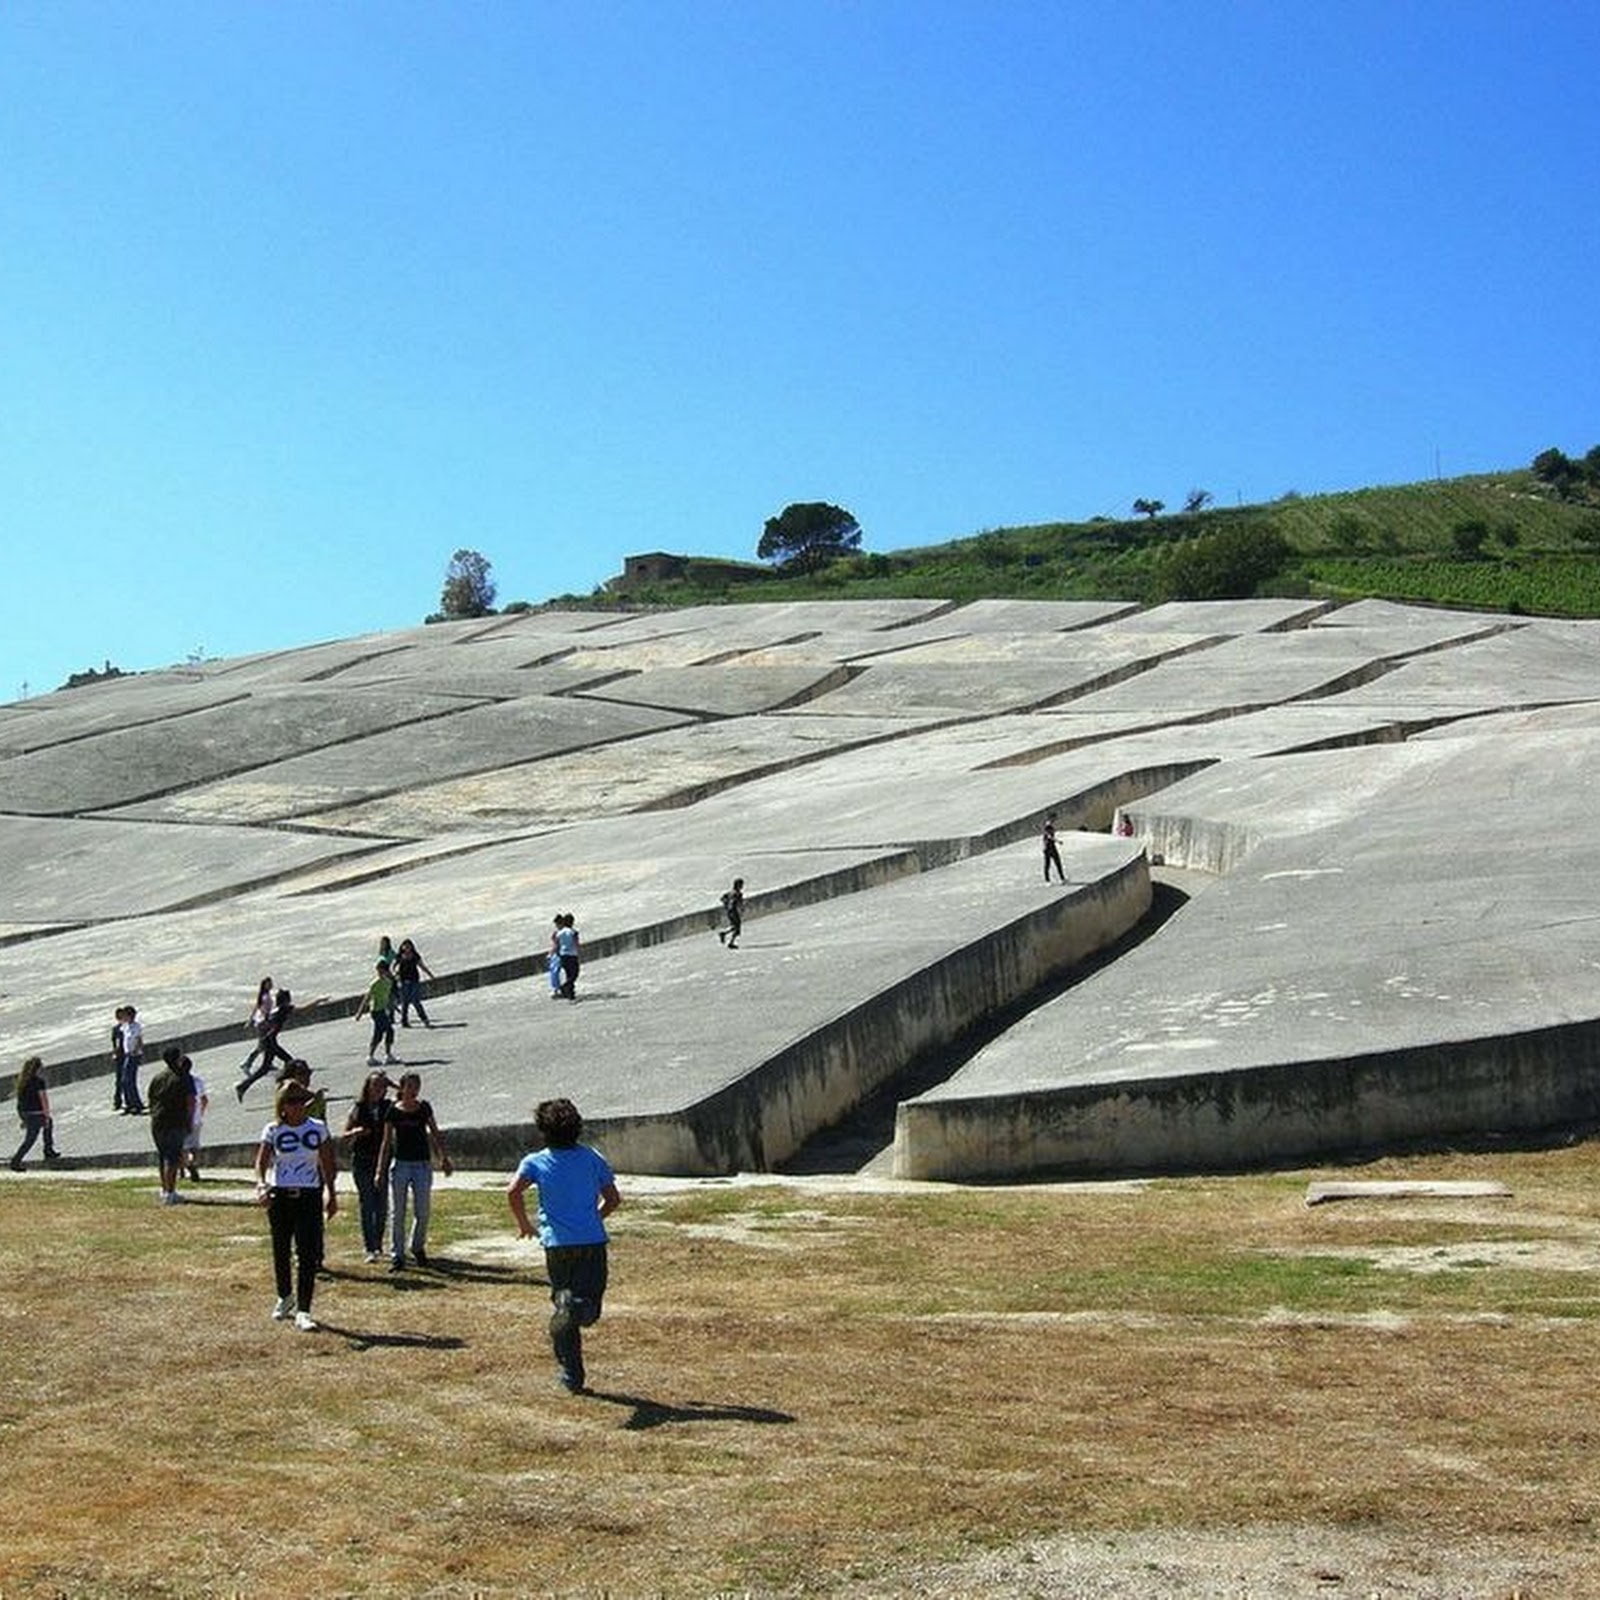 Cretto di Burri: The Concrete Labyrinth of Gibellina